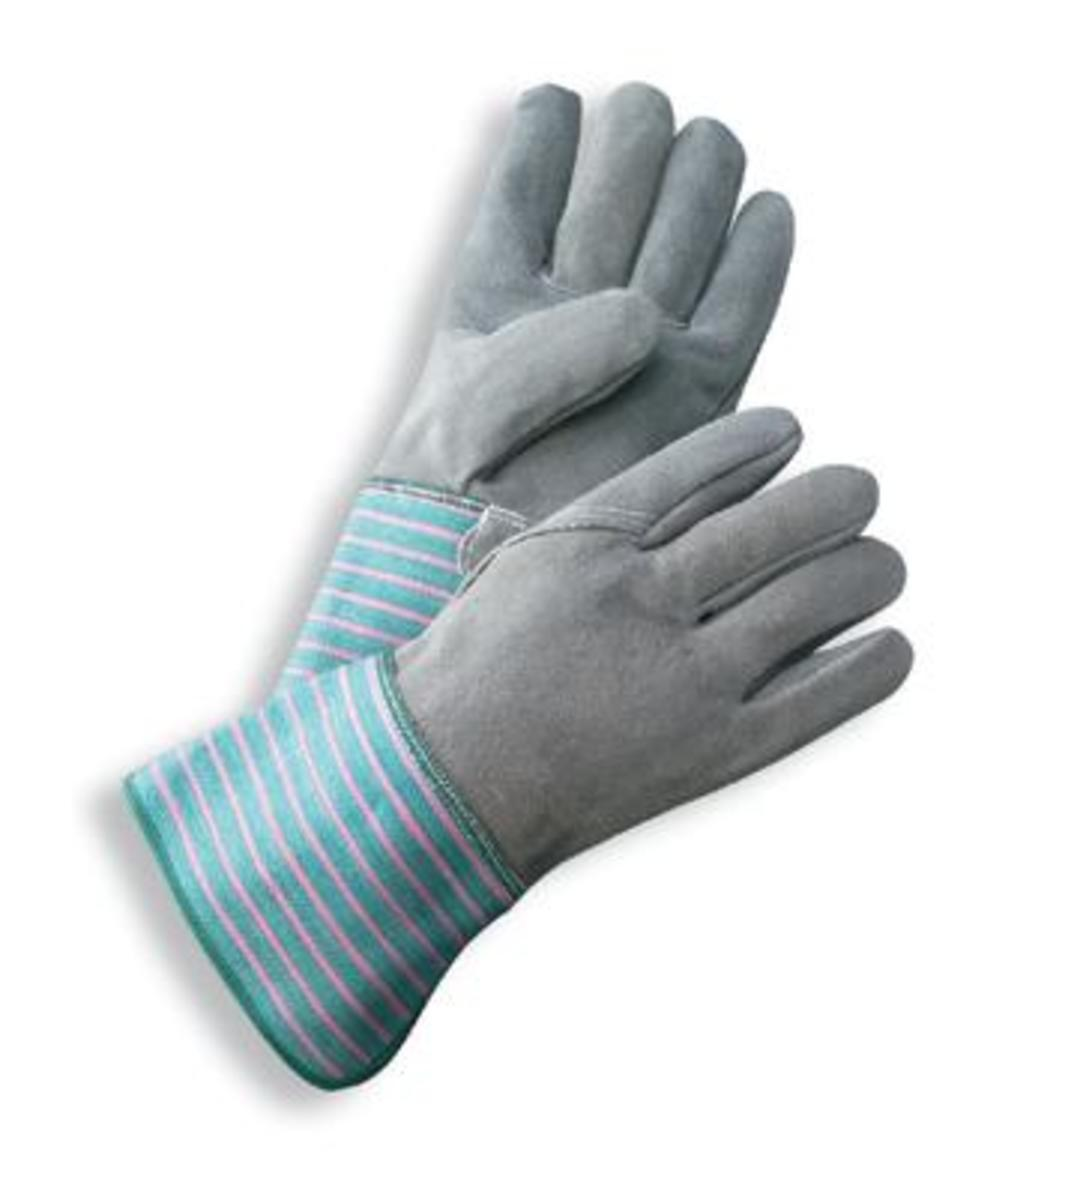 Gauntlet cuff leather work gloves - Radnor Large Select Shoulder Grade Split Leather Palm Gloves With Gauntlet Cuff Full Leather